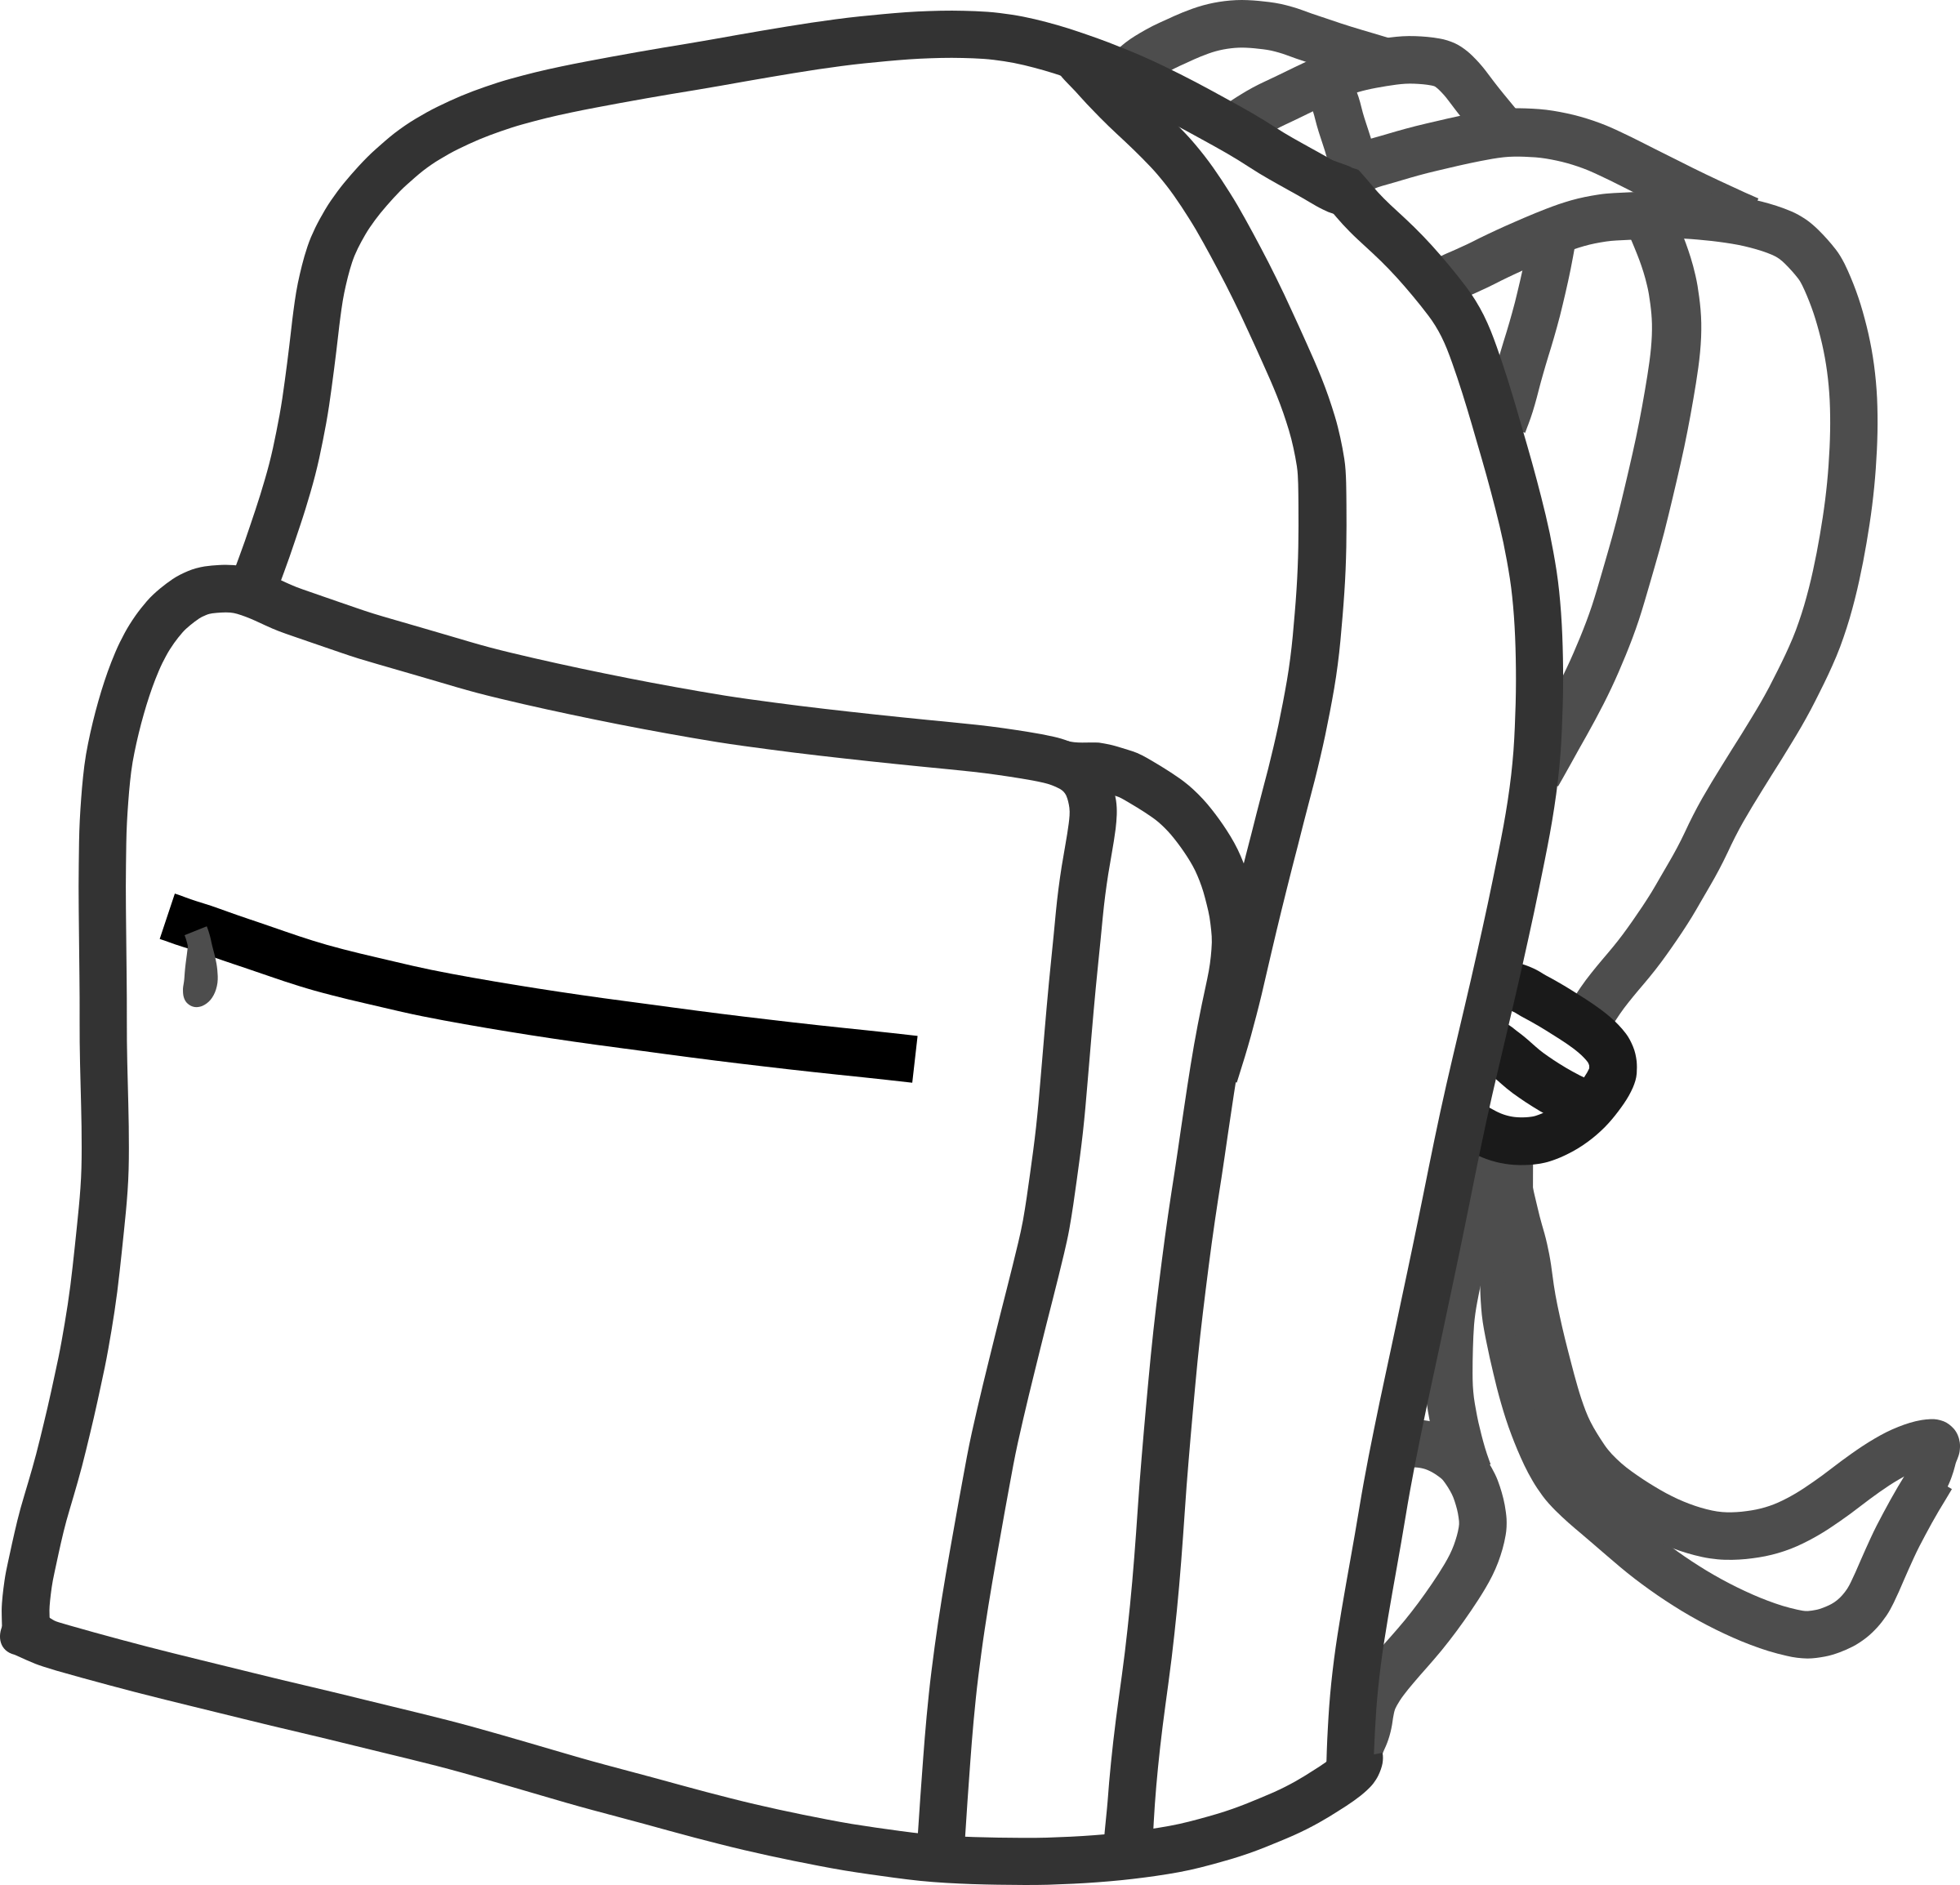 School desktop backgrounds. Bag clipart outline